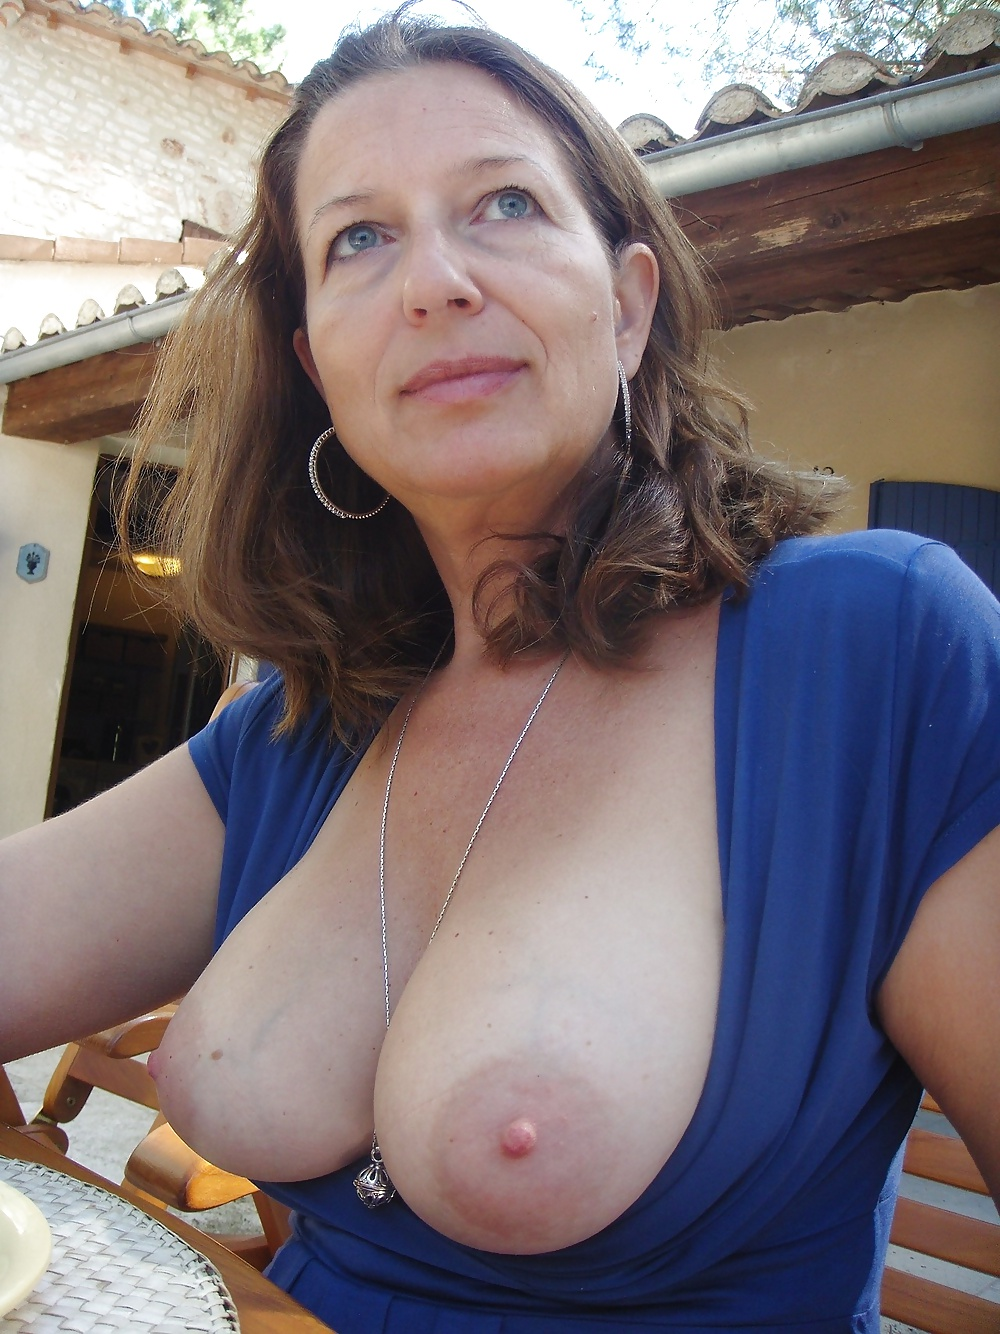 Amatuer big tit women, photos porno portugal